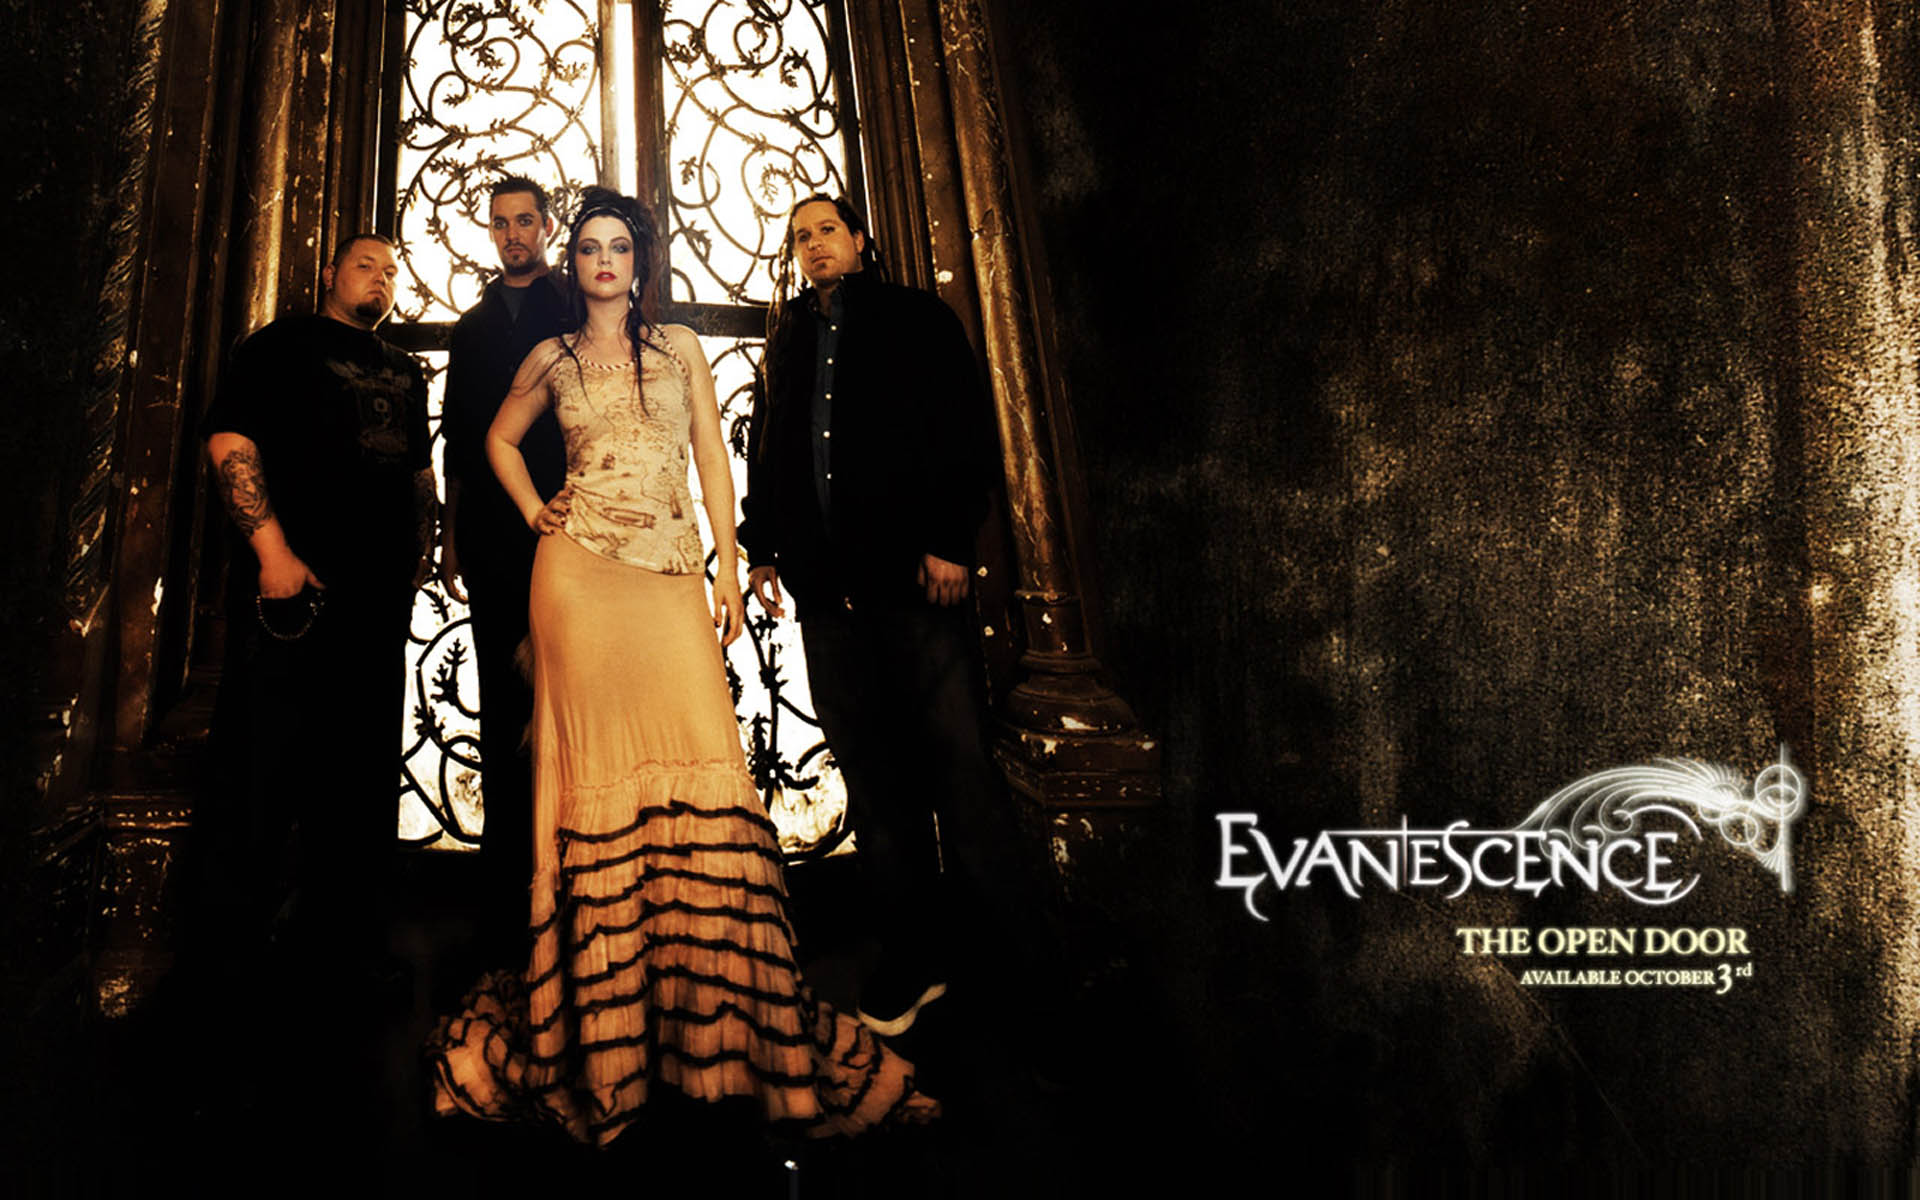 Evanescence The Open Door 1920x1200 Wallpapers 1920x1200 Wallpapers 1920x1200